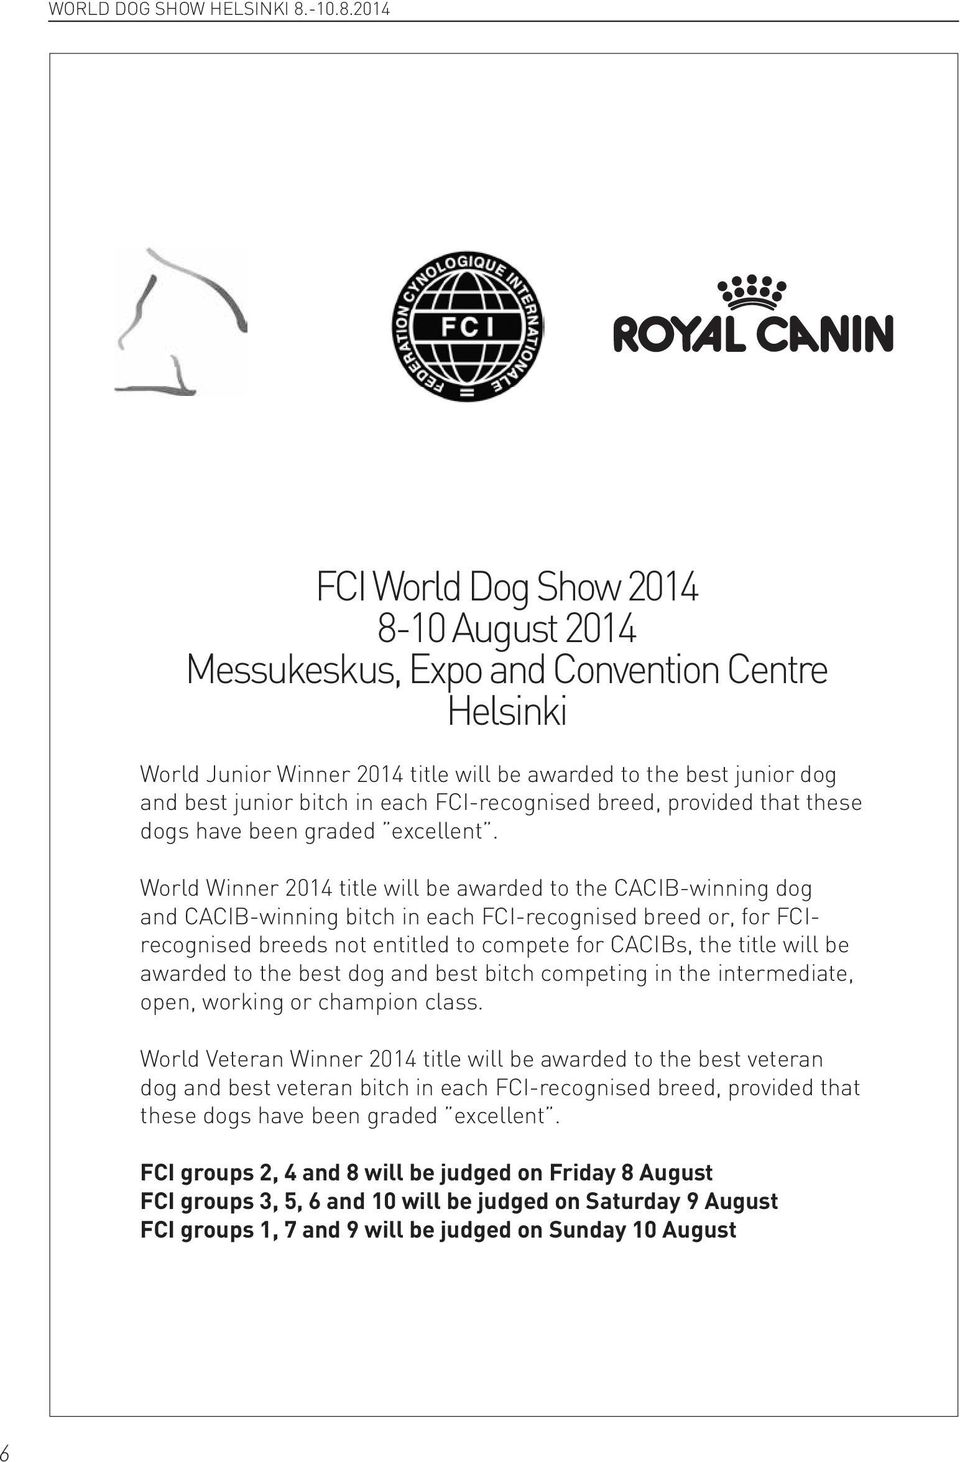 2014 FCI World Dog Show 2014 8-10 August 2014 Messukeskus, Expo and Convention Centre Helsinki World Junior Winner 2014 title will be awarded to the best junior dog and best junior bitch in each